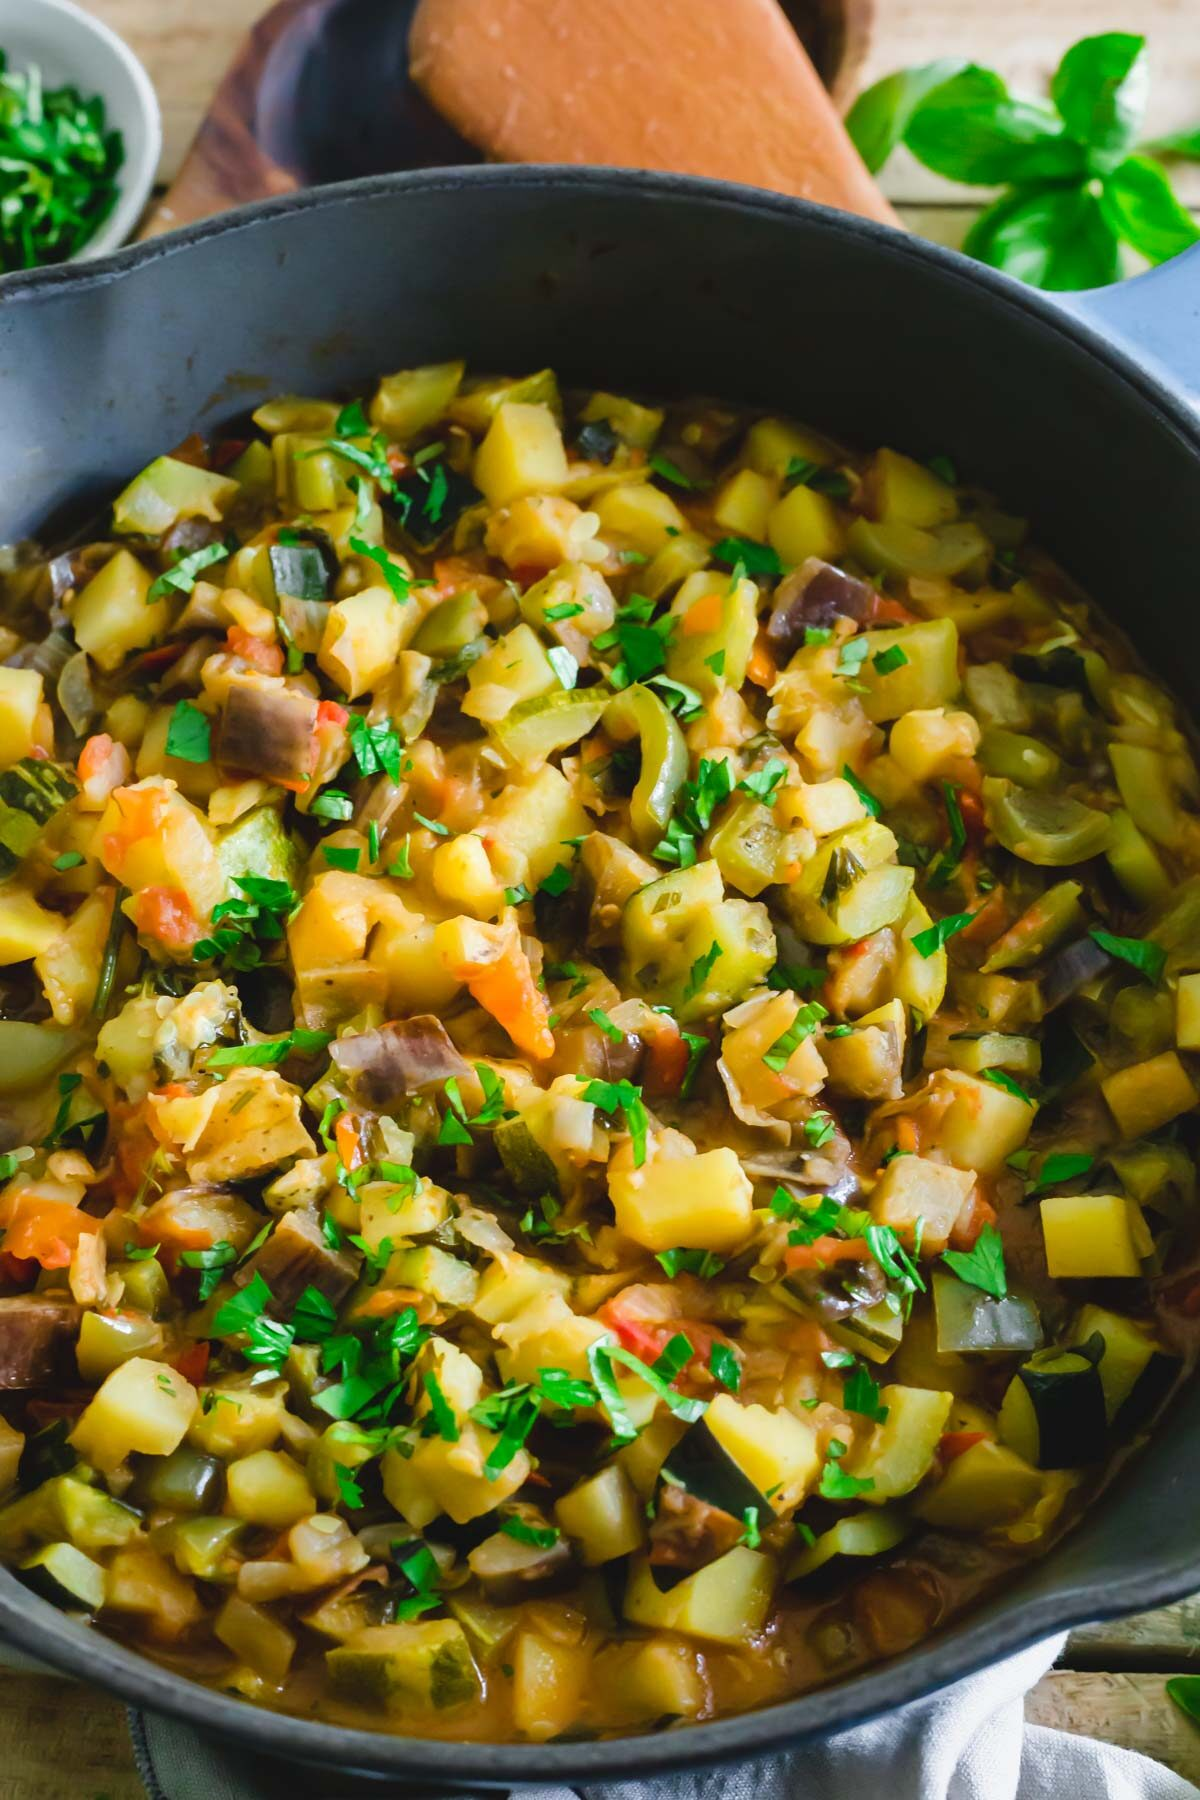 Ciambotta with eggplant, potatoes, onions, tomatoes, zucchini and peppers in a pot.